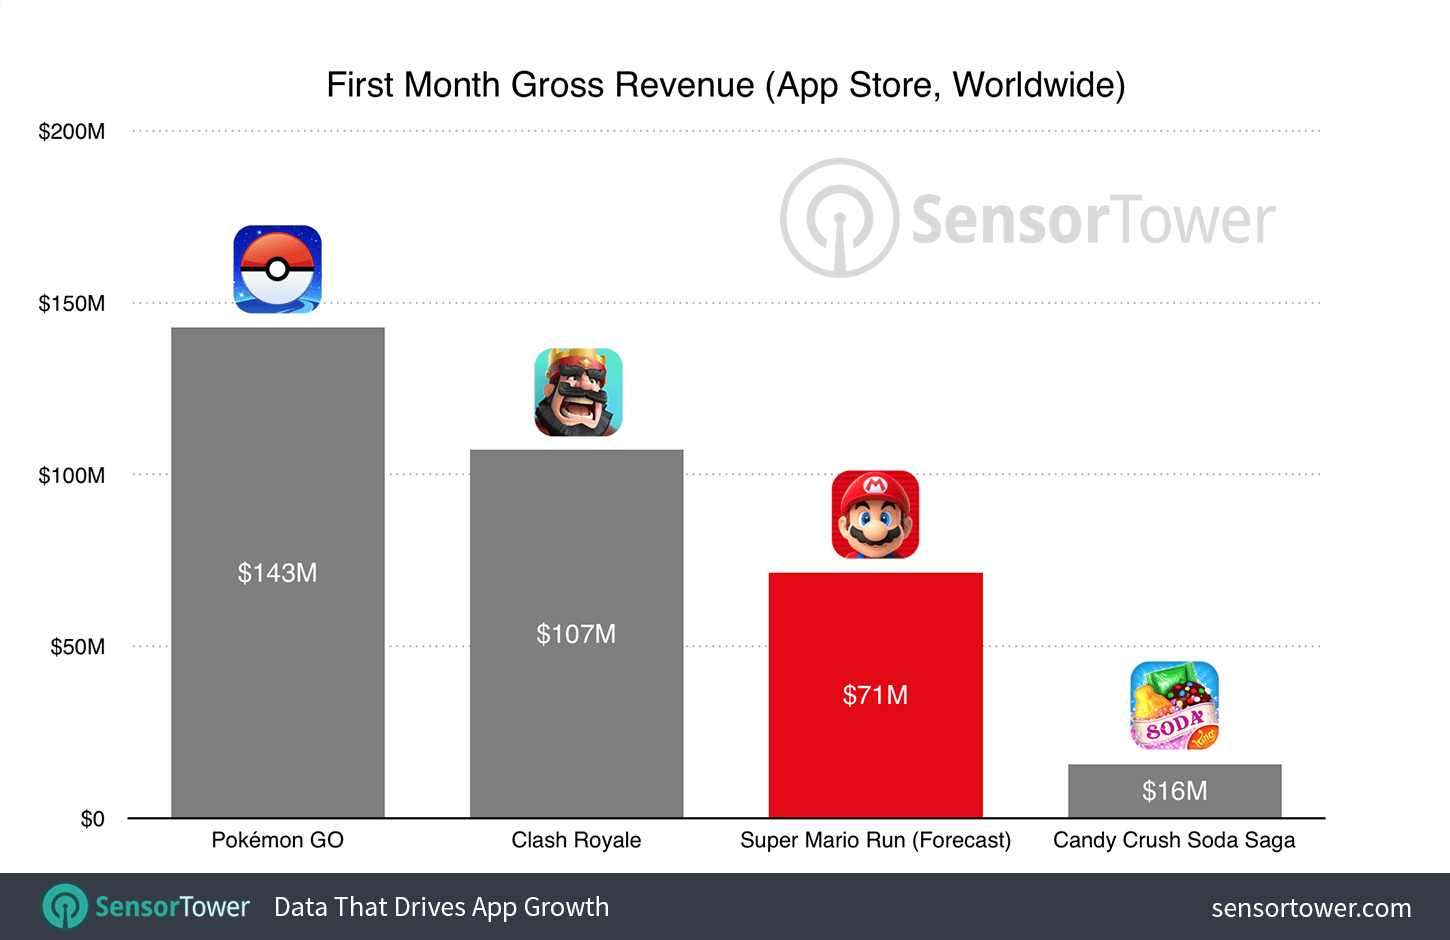 Super Mario Run will likely not much Clash Royale or Pokémon Go's money-making power.